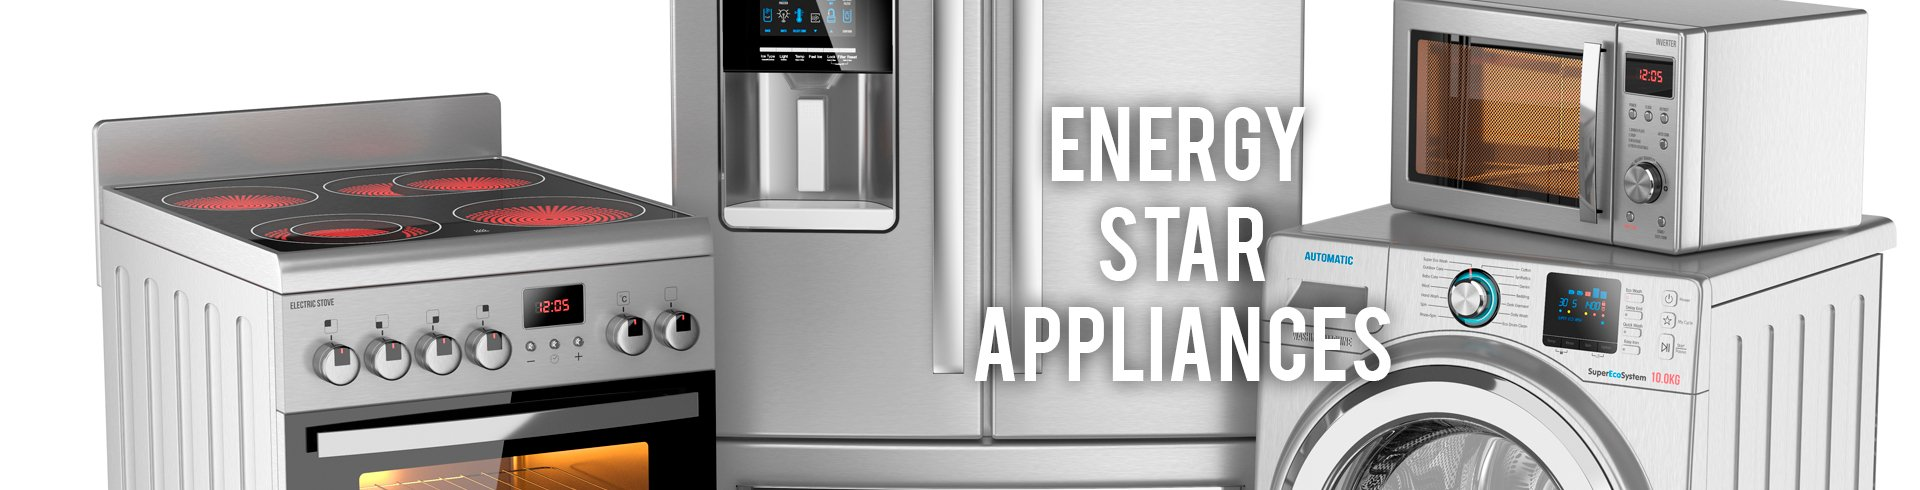 Energy Star Kitchen Appliances Energy Star Appliances Rc Willey Furniture Store